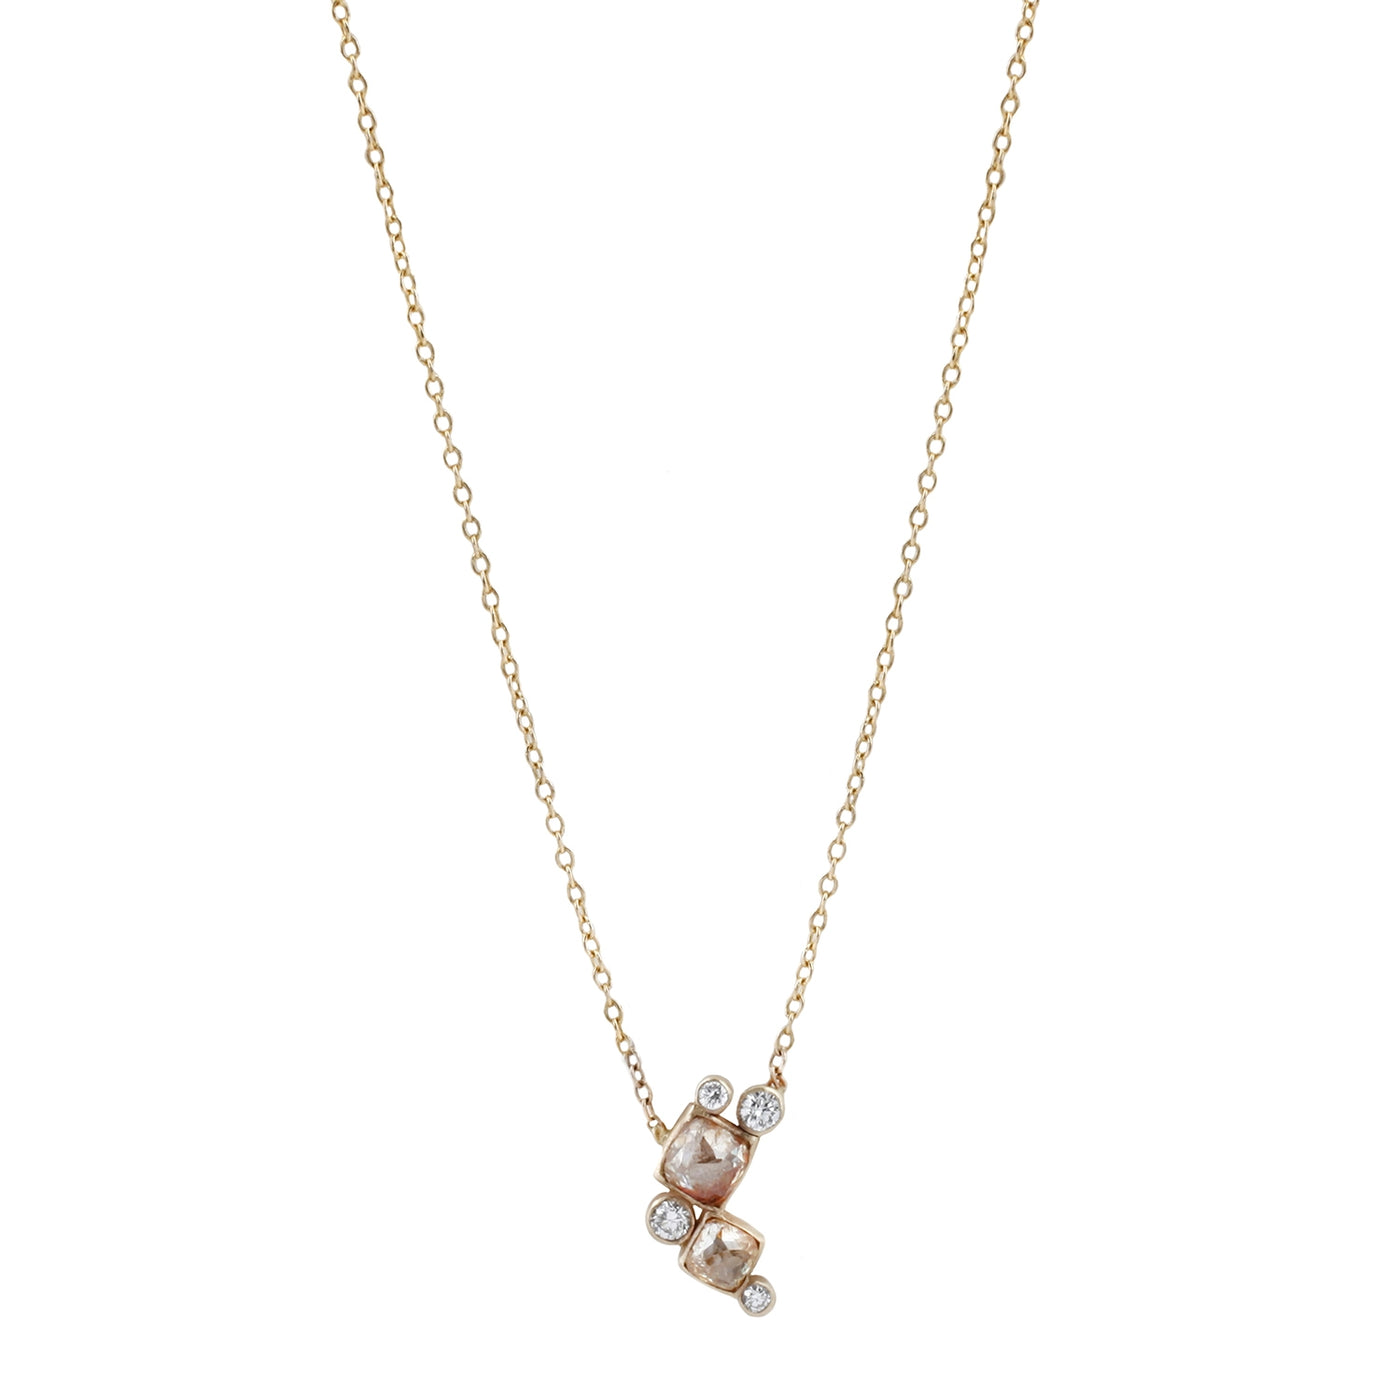 Rebecca Overmann Falling Bubbles Diamond Necklace